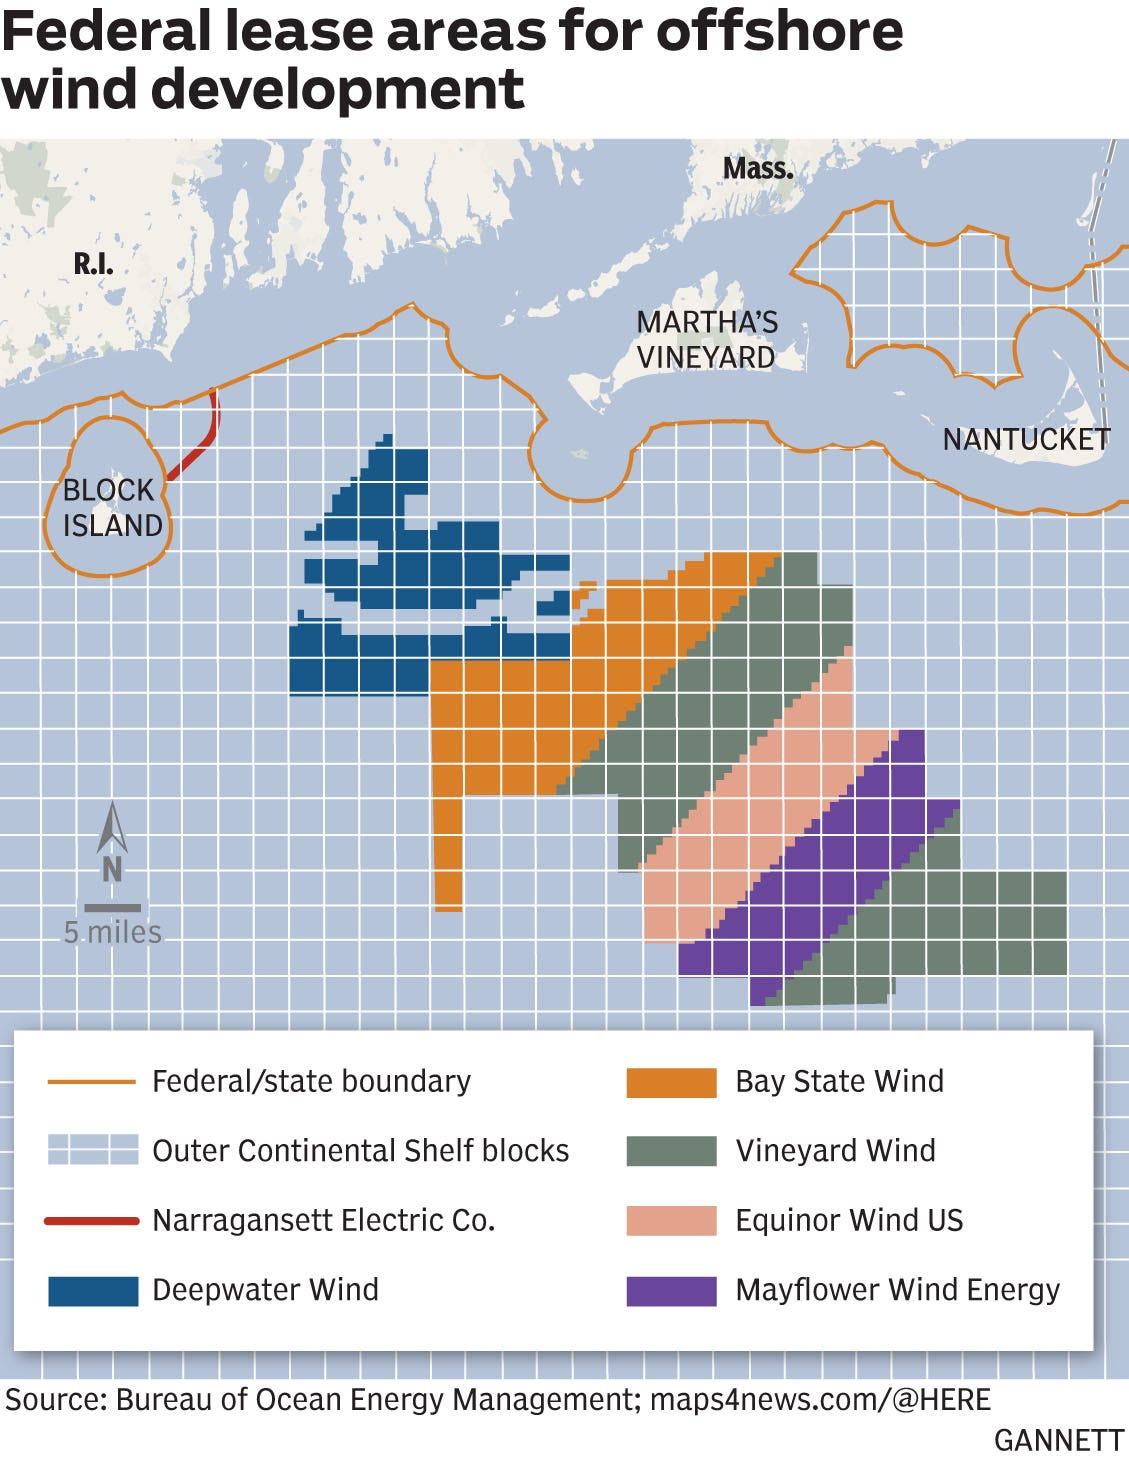 Federal lease areas for offshore wind developments off Martha's Vineyard and Nantucket.